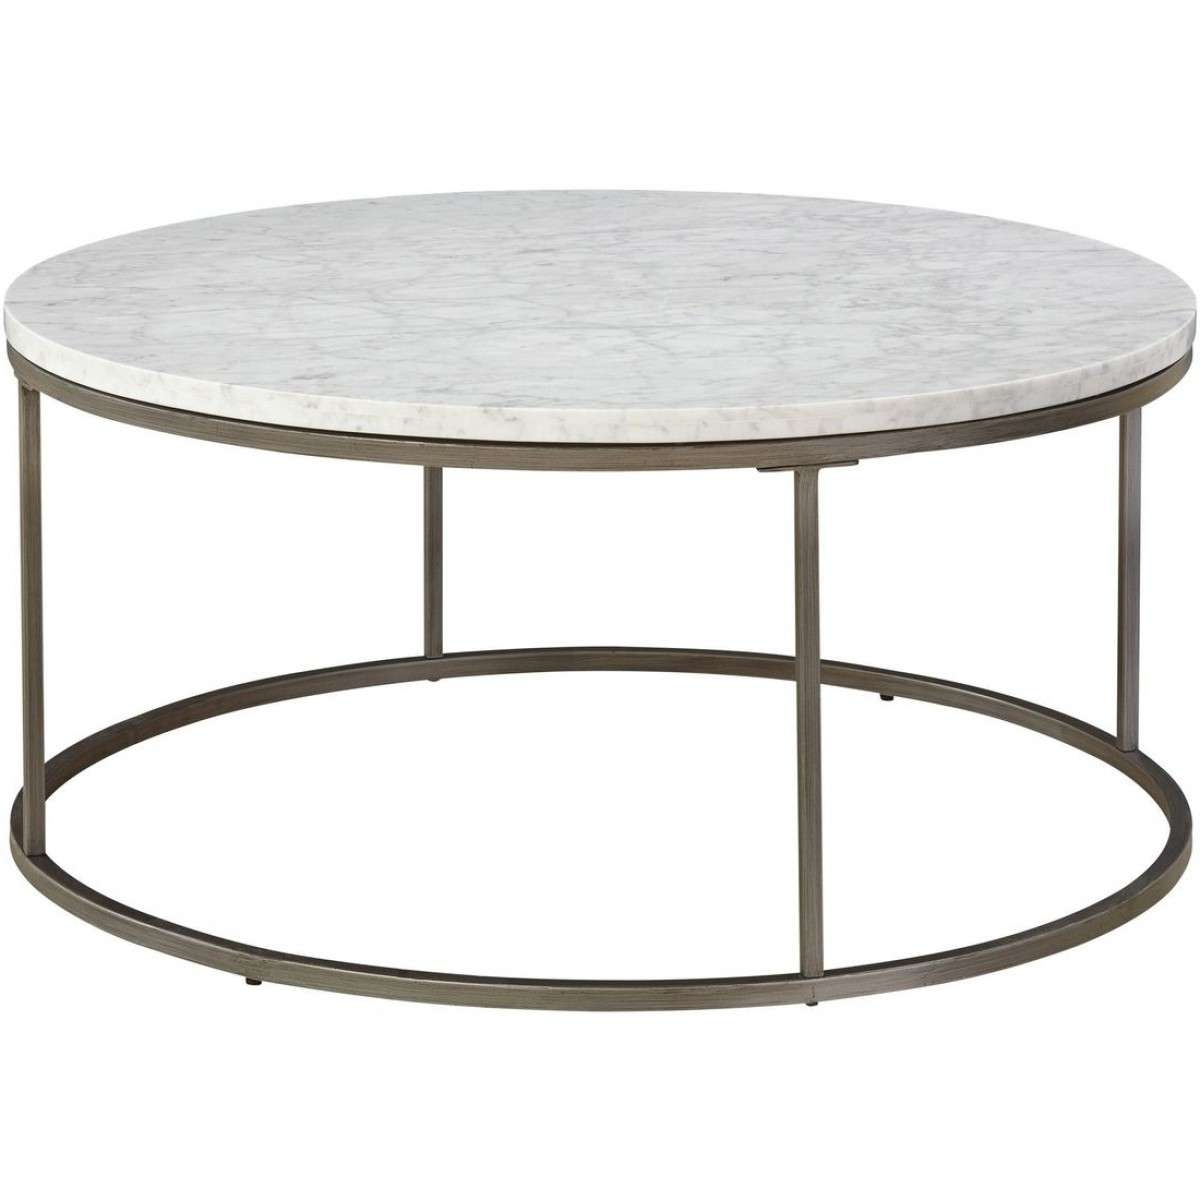 Alana Round Coffee Table With White Marble Top Throughout Best And Newest Marble Round Coffee Tables (View 1 of 20)